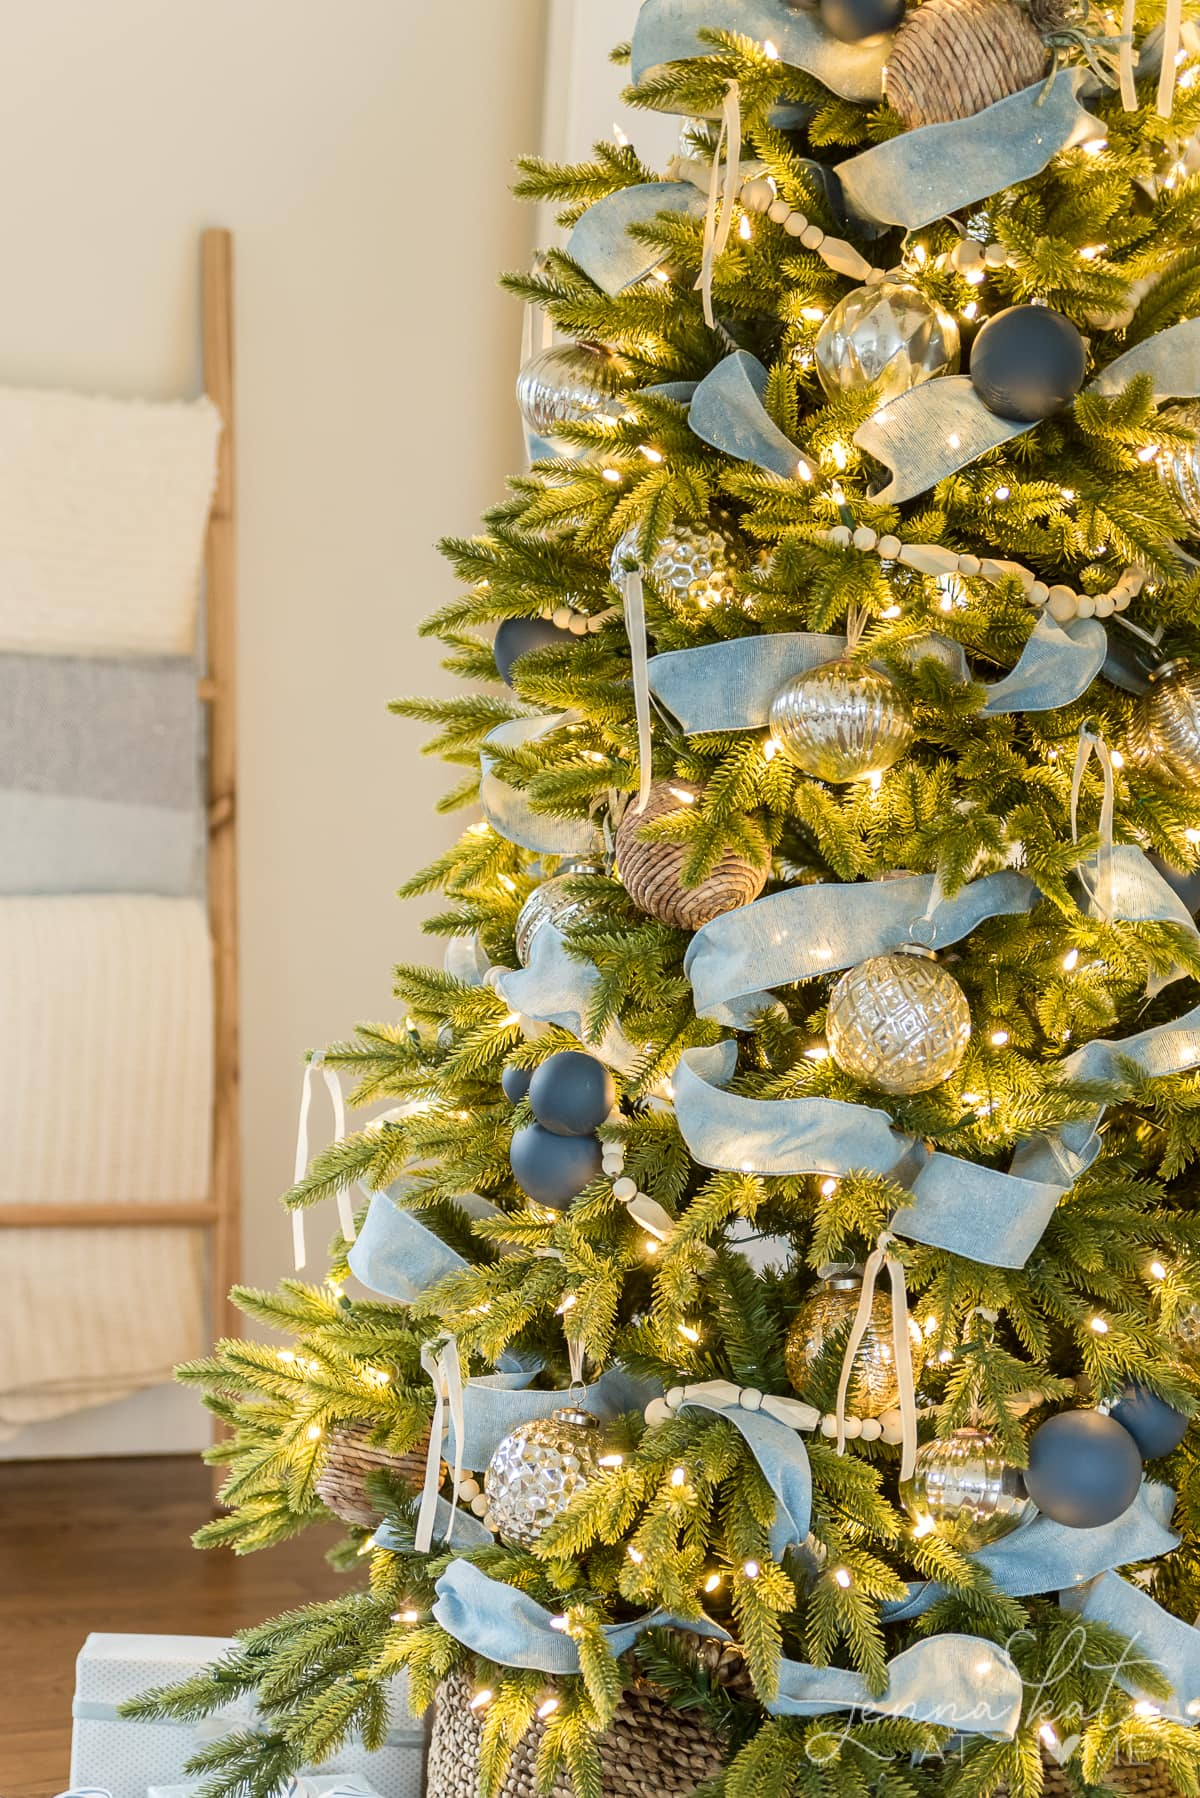 Close up of blue ribbon and blue ornaments as well as mercury glass balls on the Christmas tree